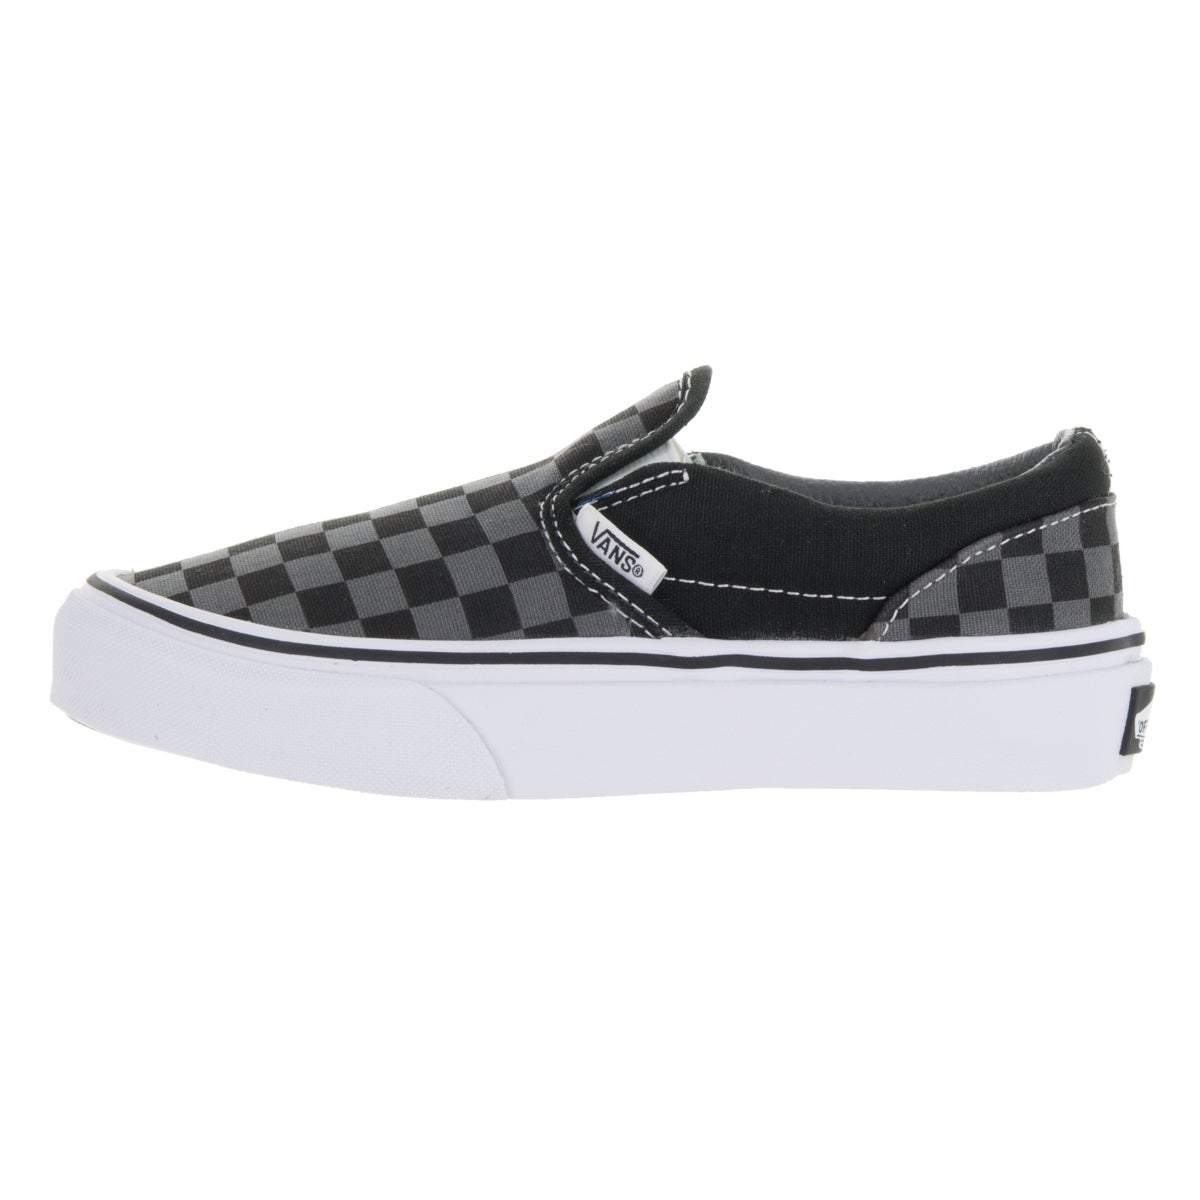 dfc7da26c6b0f0 Shop Vans Kids  Black and Pewter Checkboard Canvas Classic Slip-on Skate  Shoes - Ships To Canada - Overstock.ca - 13394115